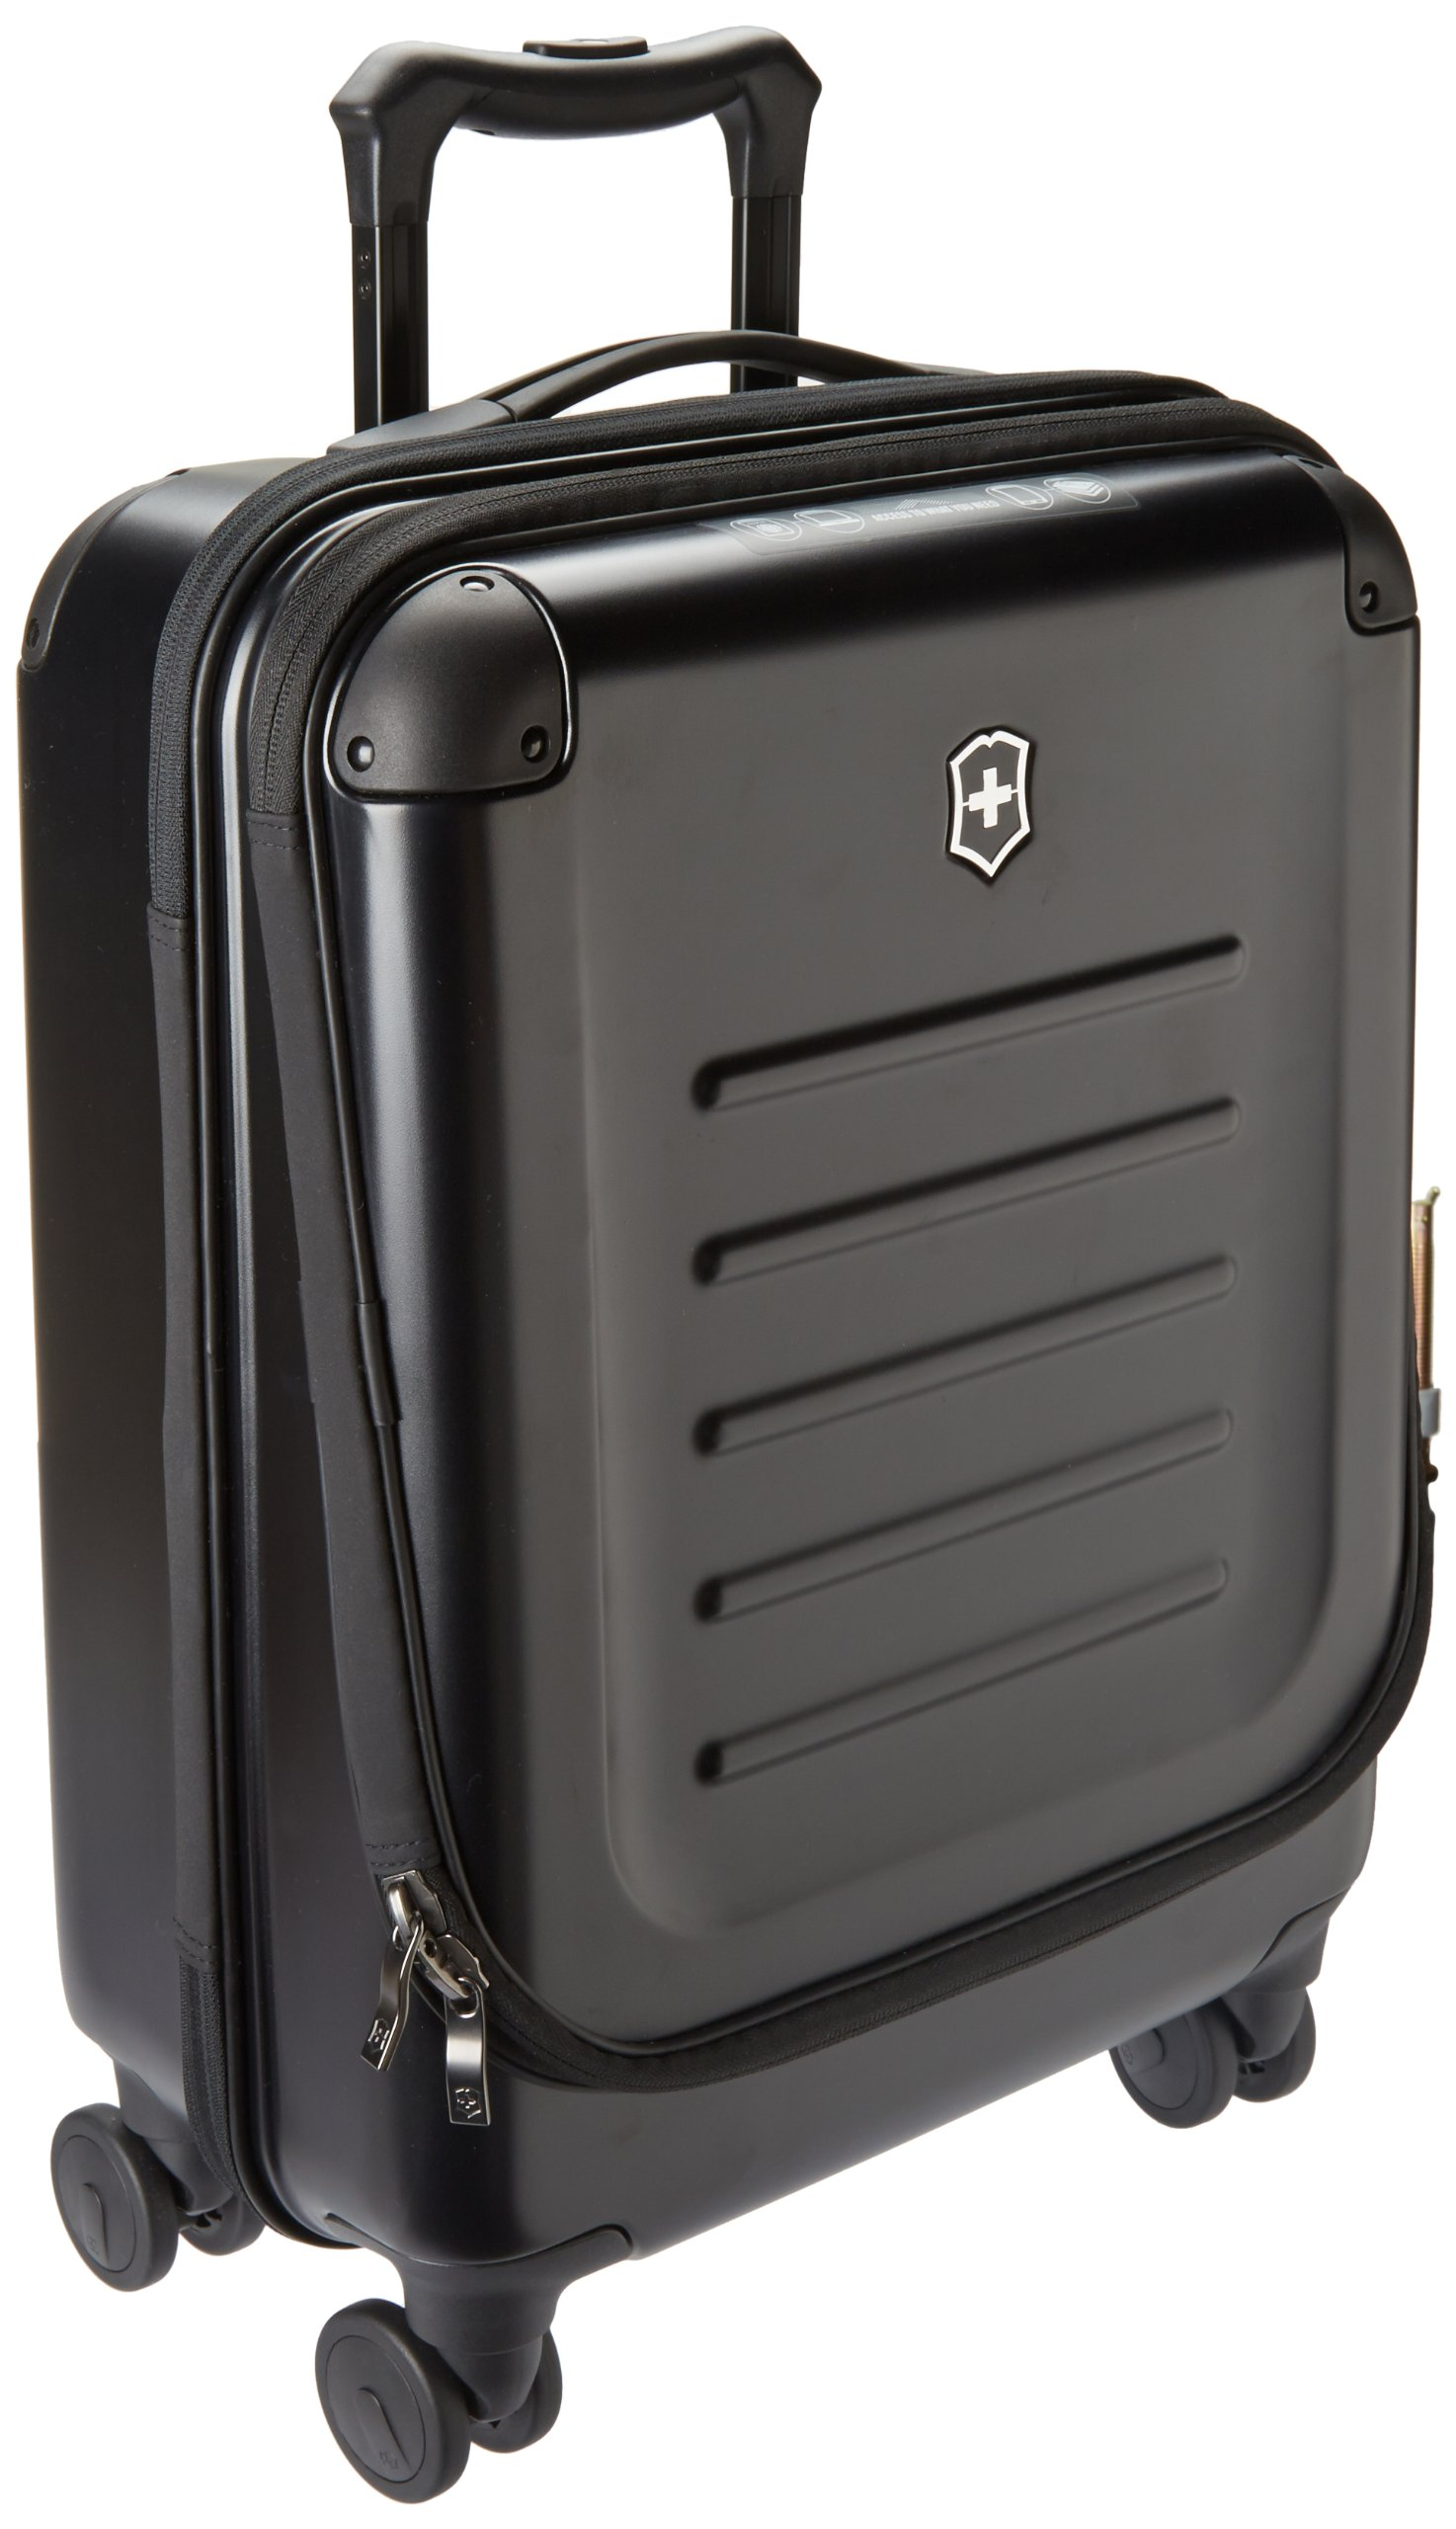 Victorinox Luggage Spectra 2.0 Dual-Access Global Carry-On, Black, One Size by Victorinox